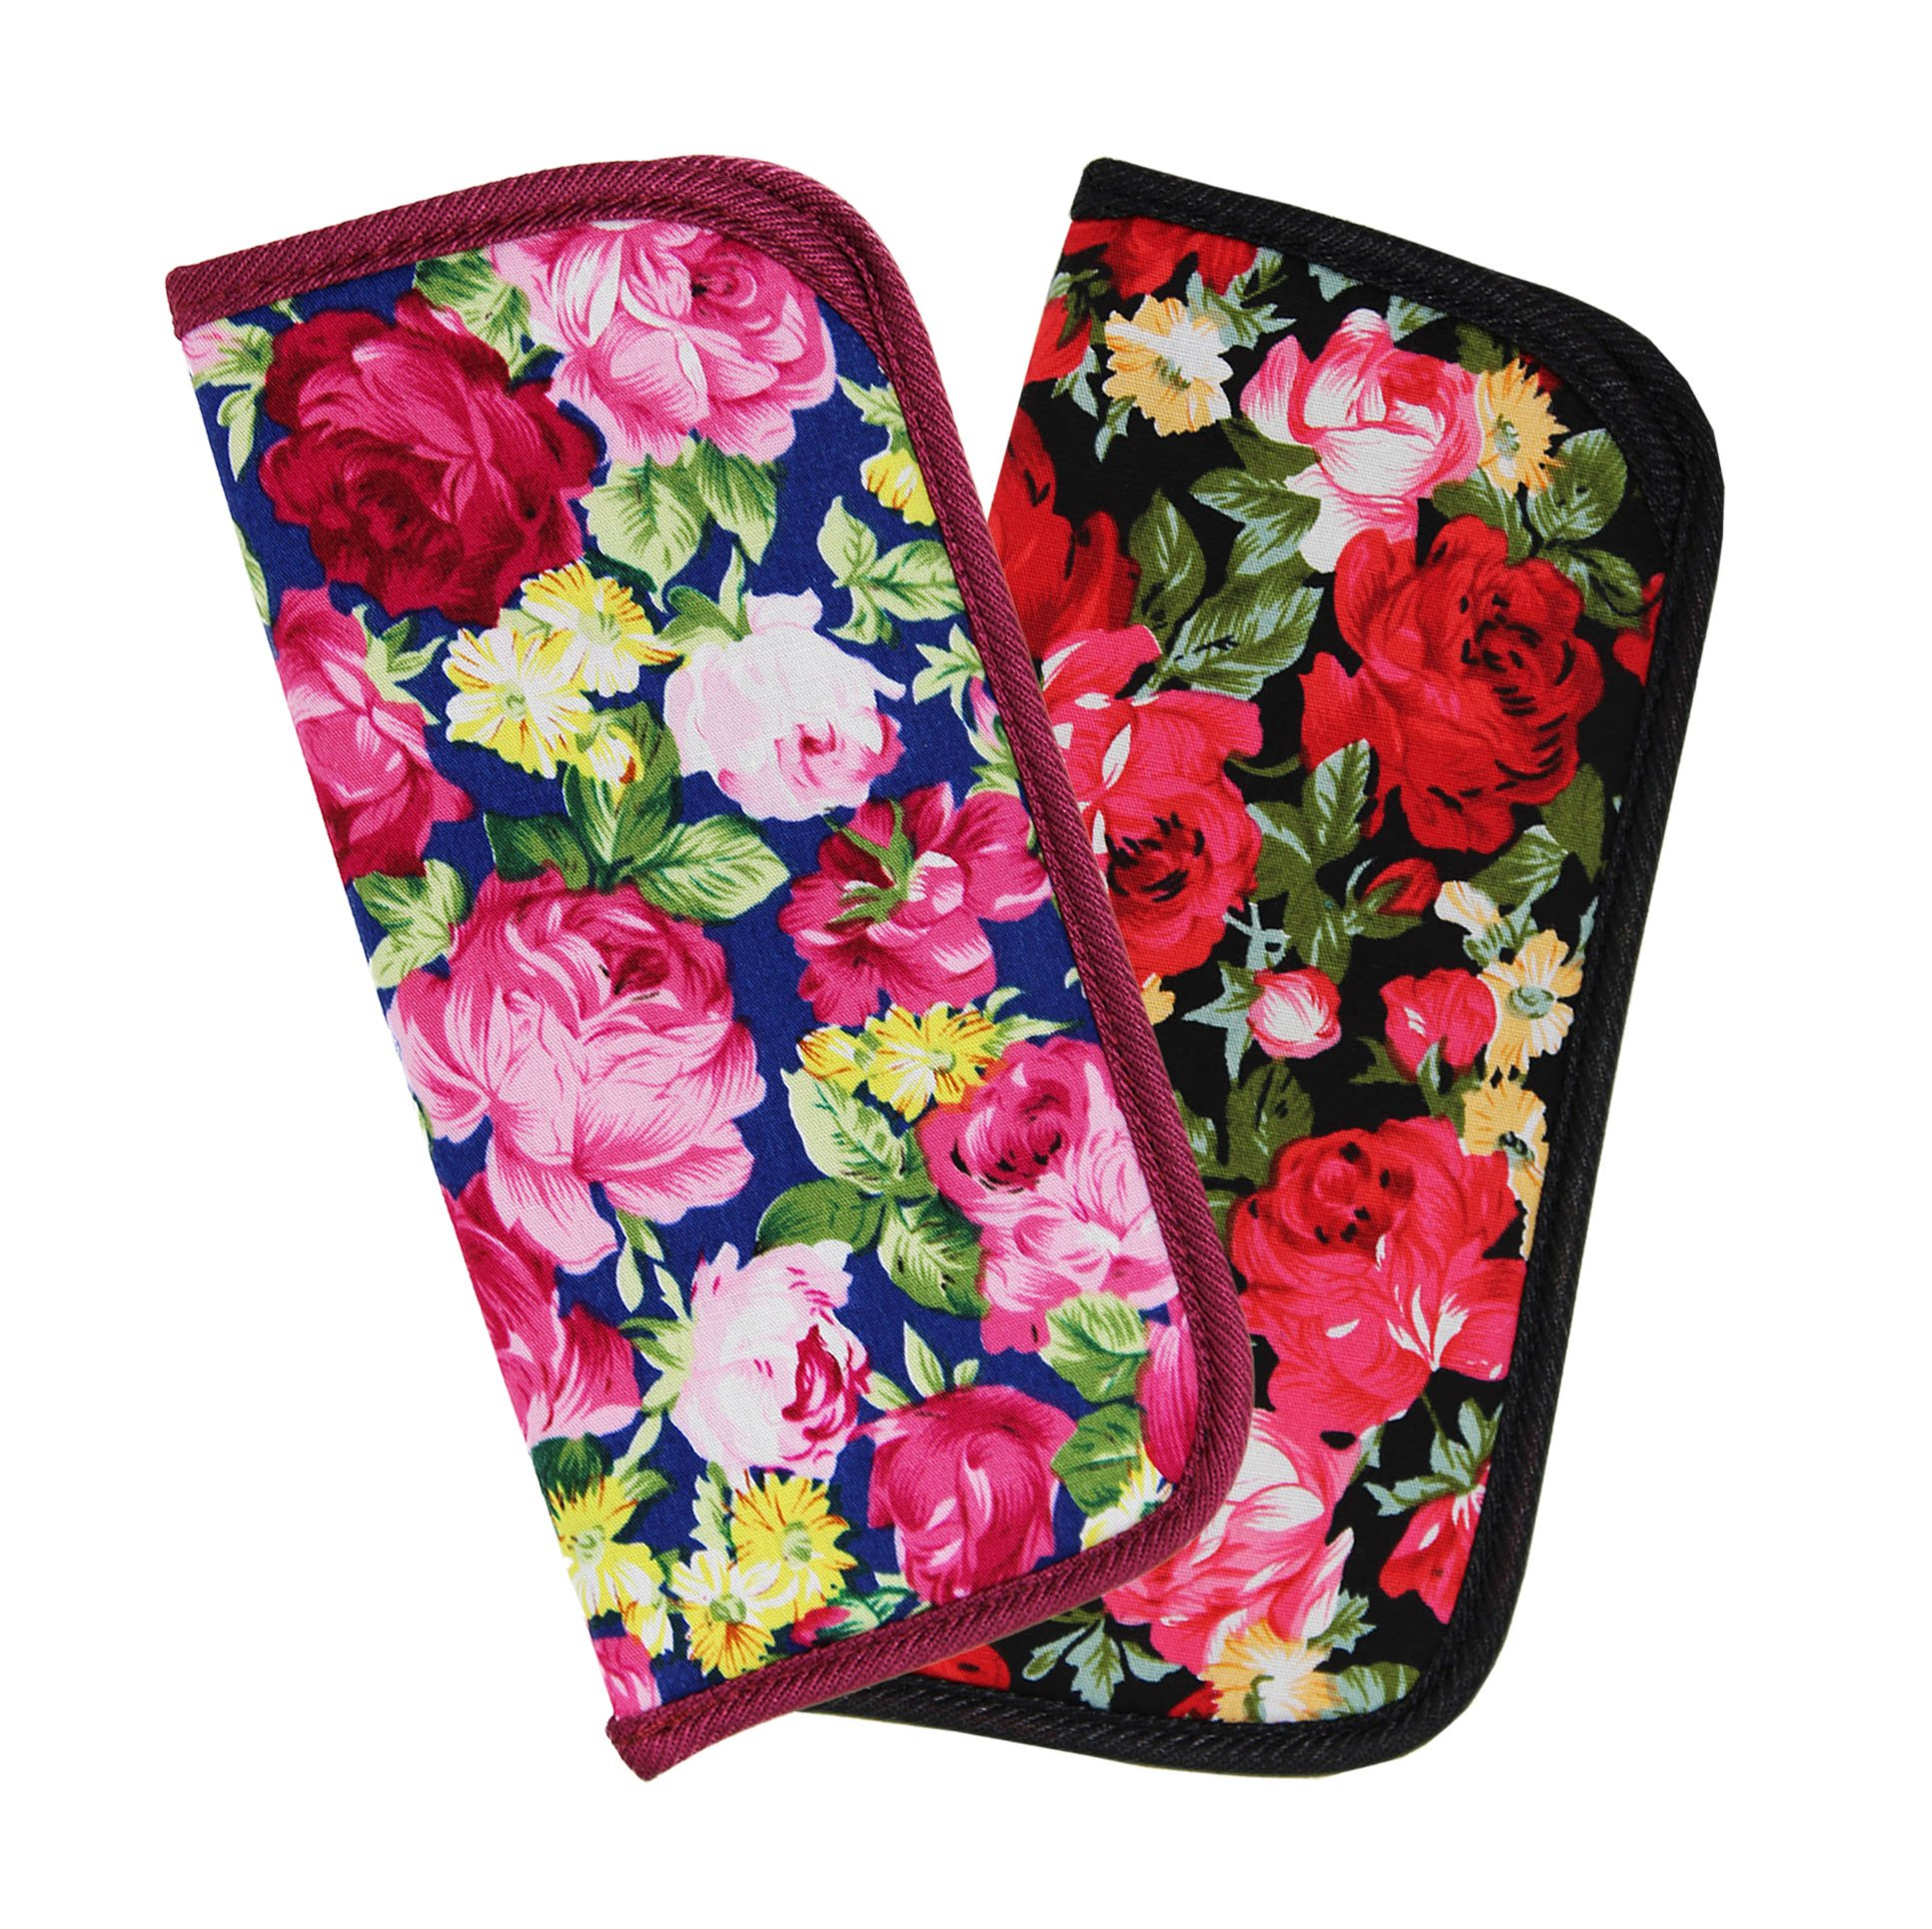 2 Pack Soft Slip In Eyeglass Case for Women Glasses, Reading Glasses, or Sunglasses – Fabric Floral Case